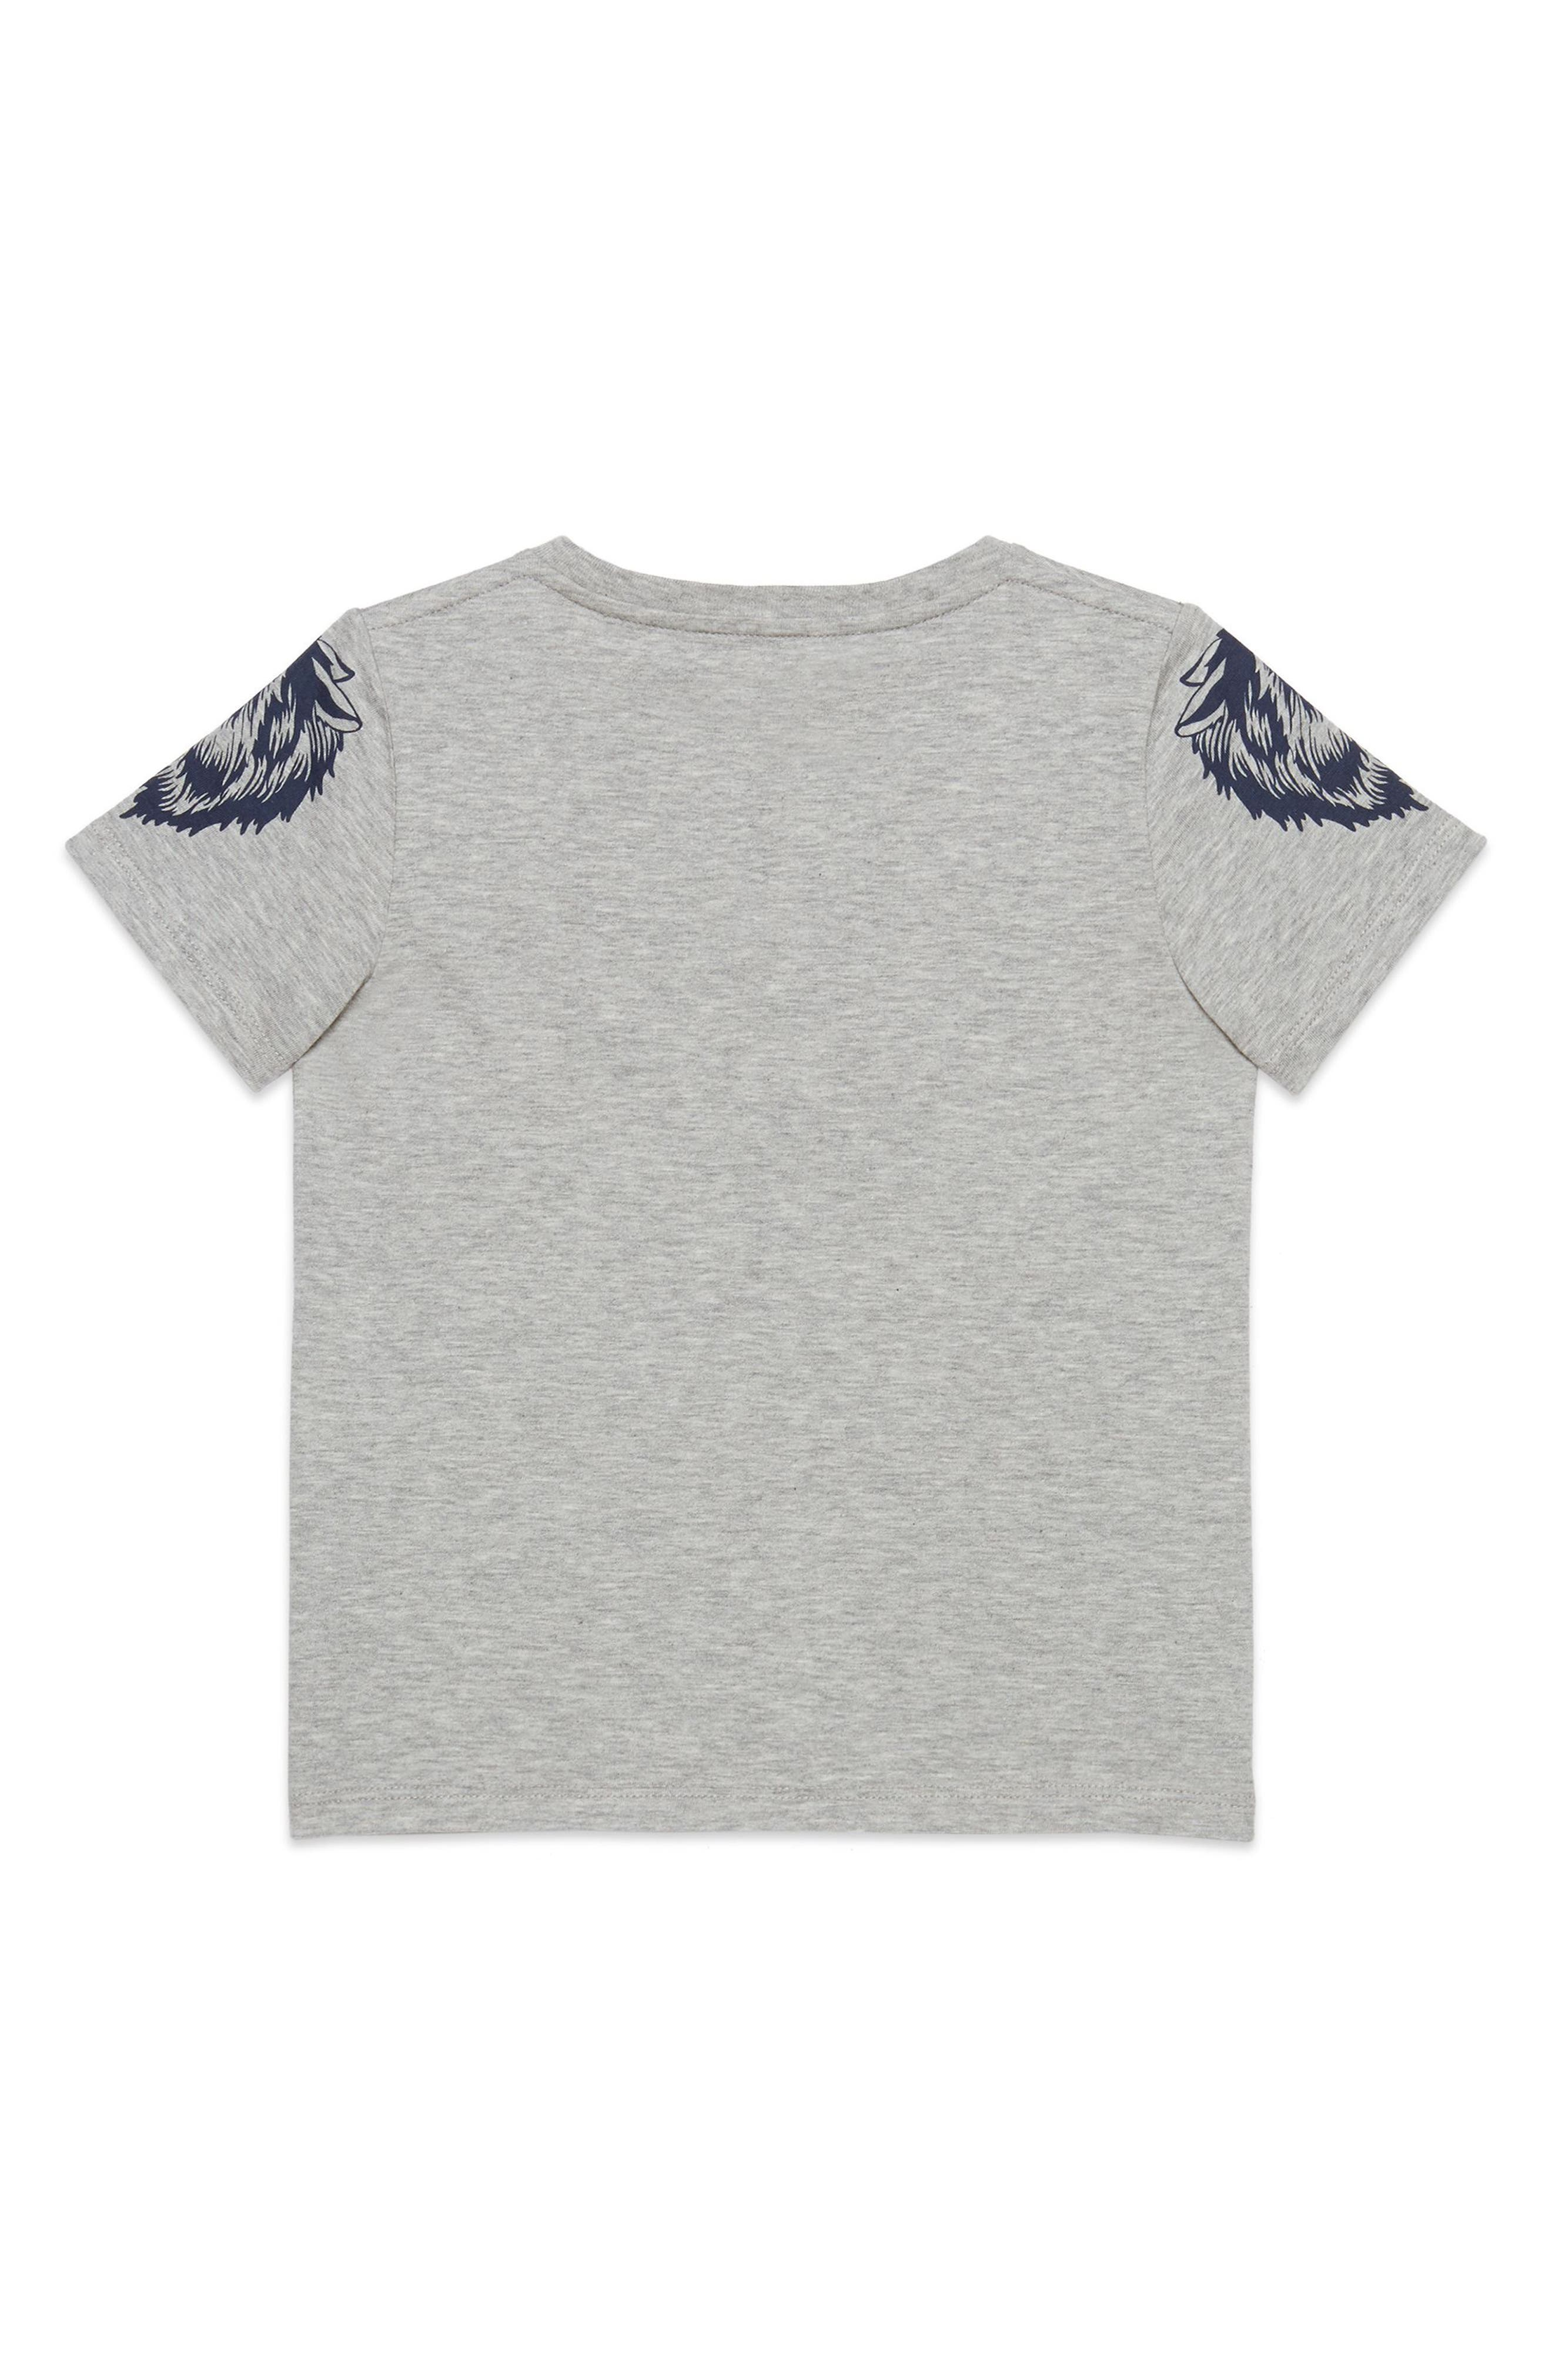 GUCCI,                             Guccy Monster & King Snake Graphic T-Shirt,                             Alternate thumbnail 2, color,                             020